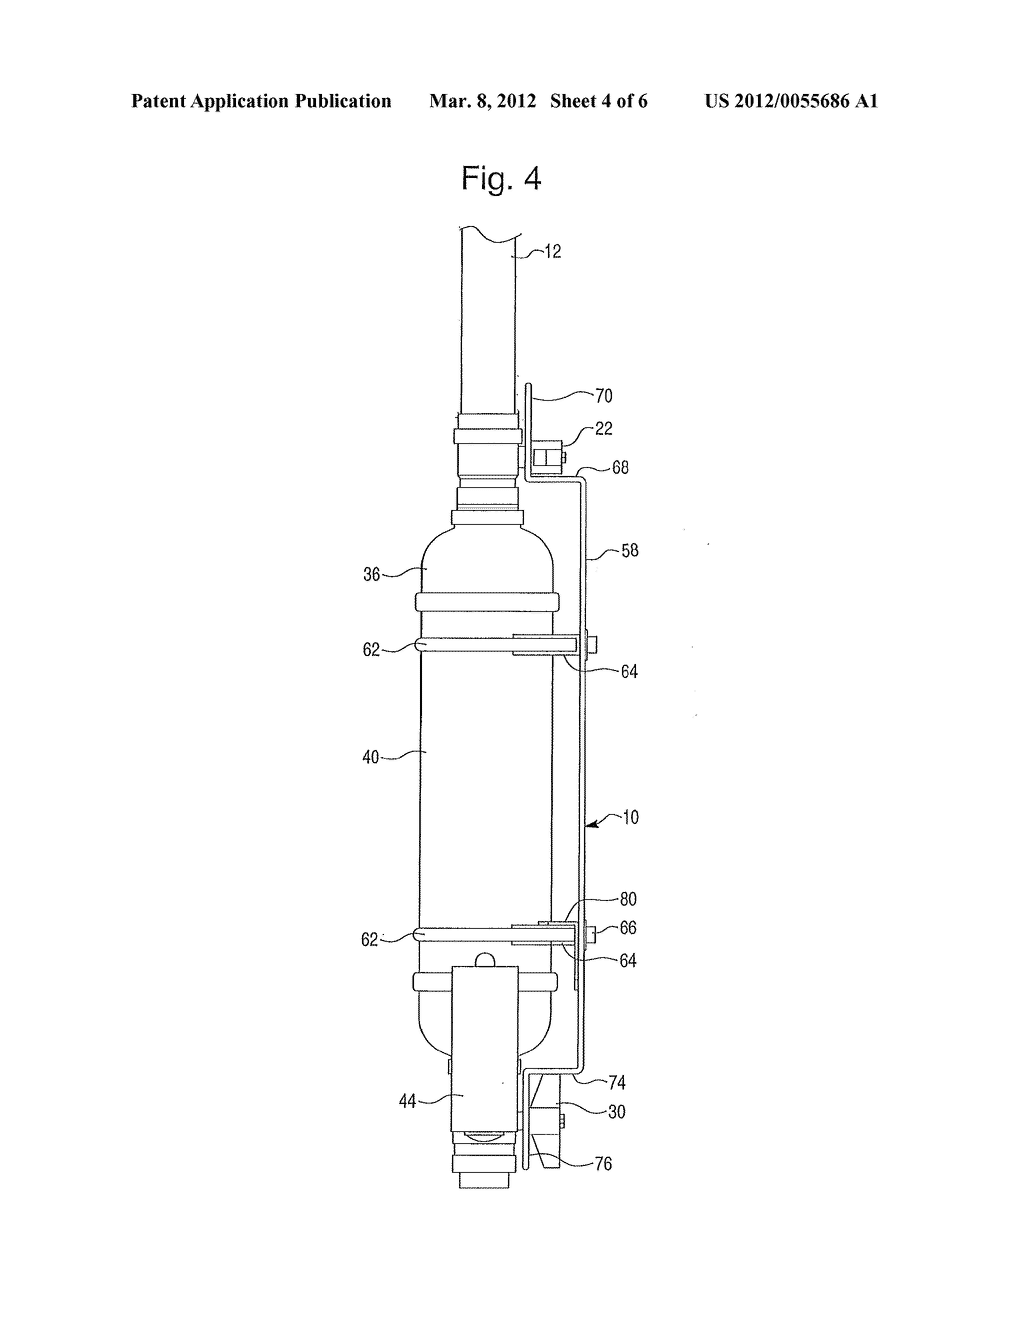 Condensate Collector Arrangement With Anti Trip For Dry Sprinkler System Diagram Pipe Schematic And Image 05